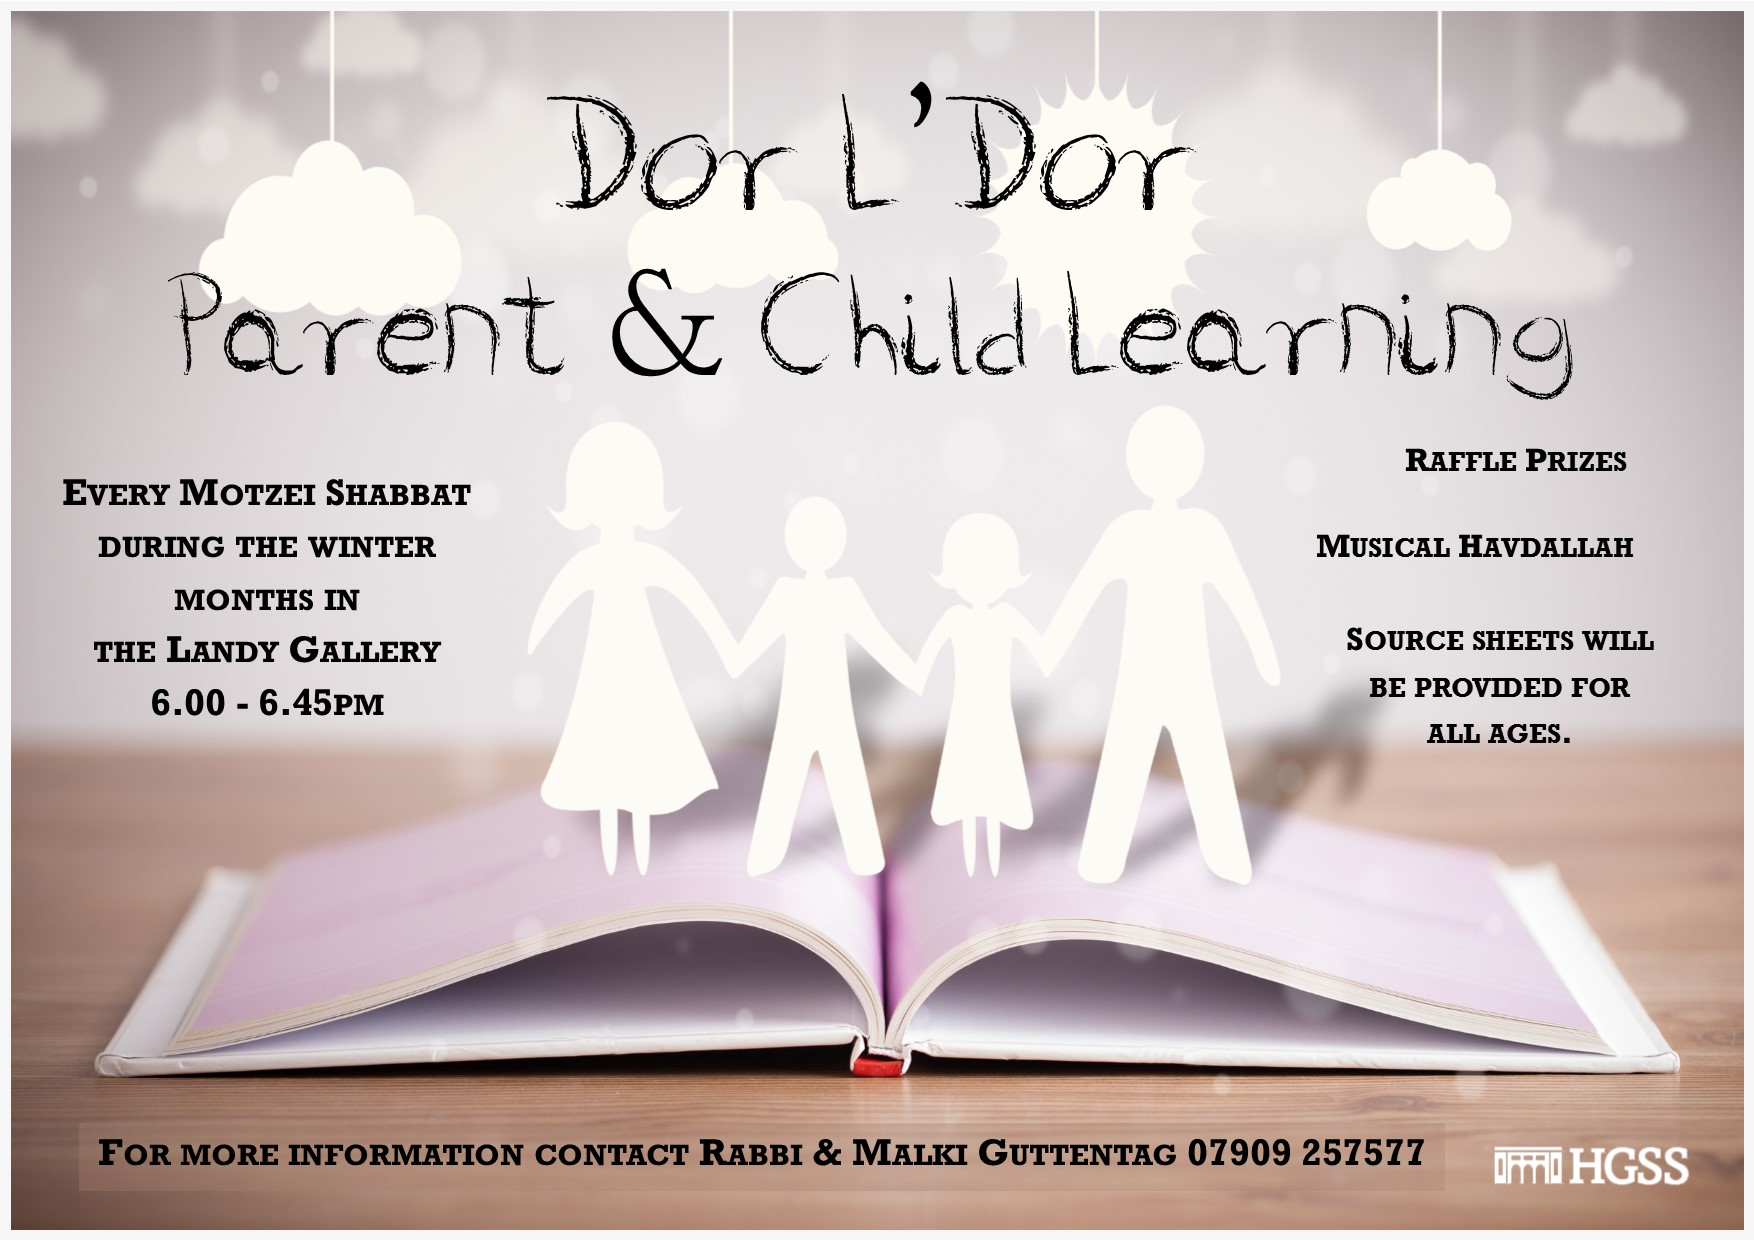 Dor L'Dor Family Parent & Child Learning @ 8 Raeburn Close, NW11 6UG